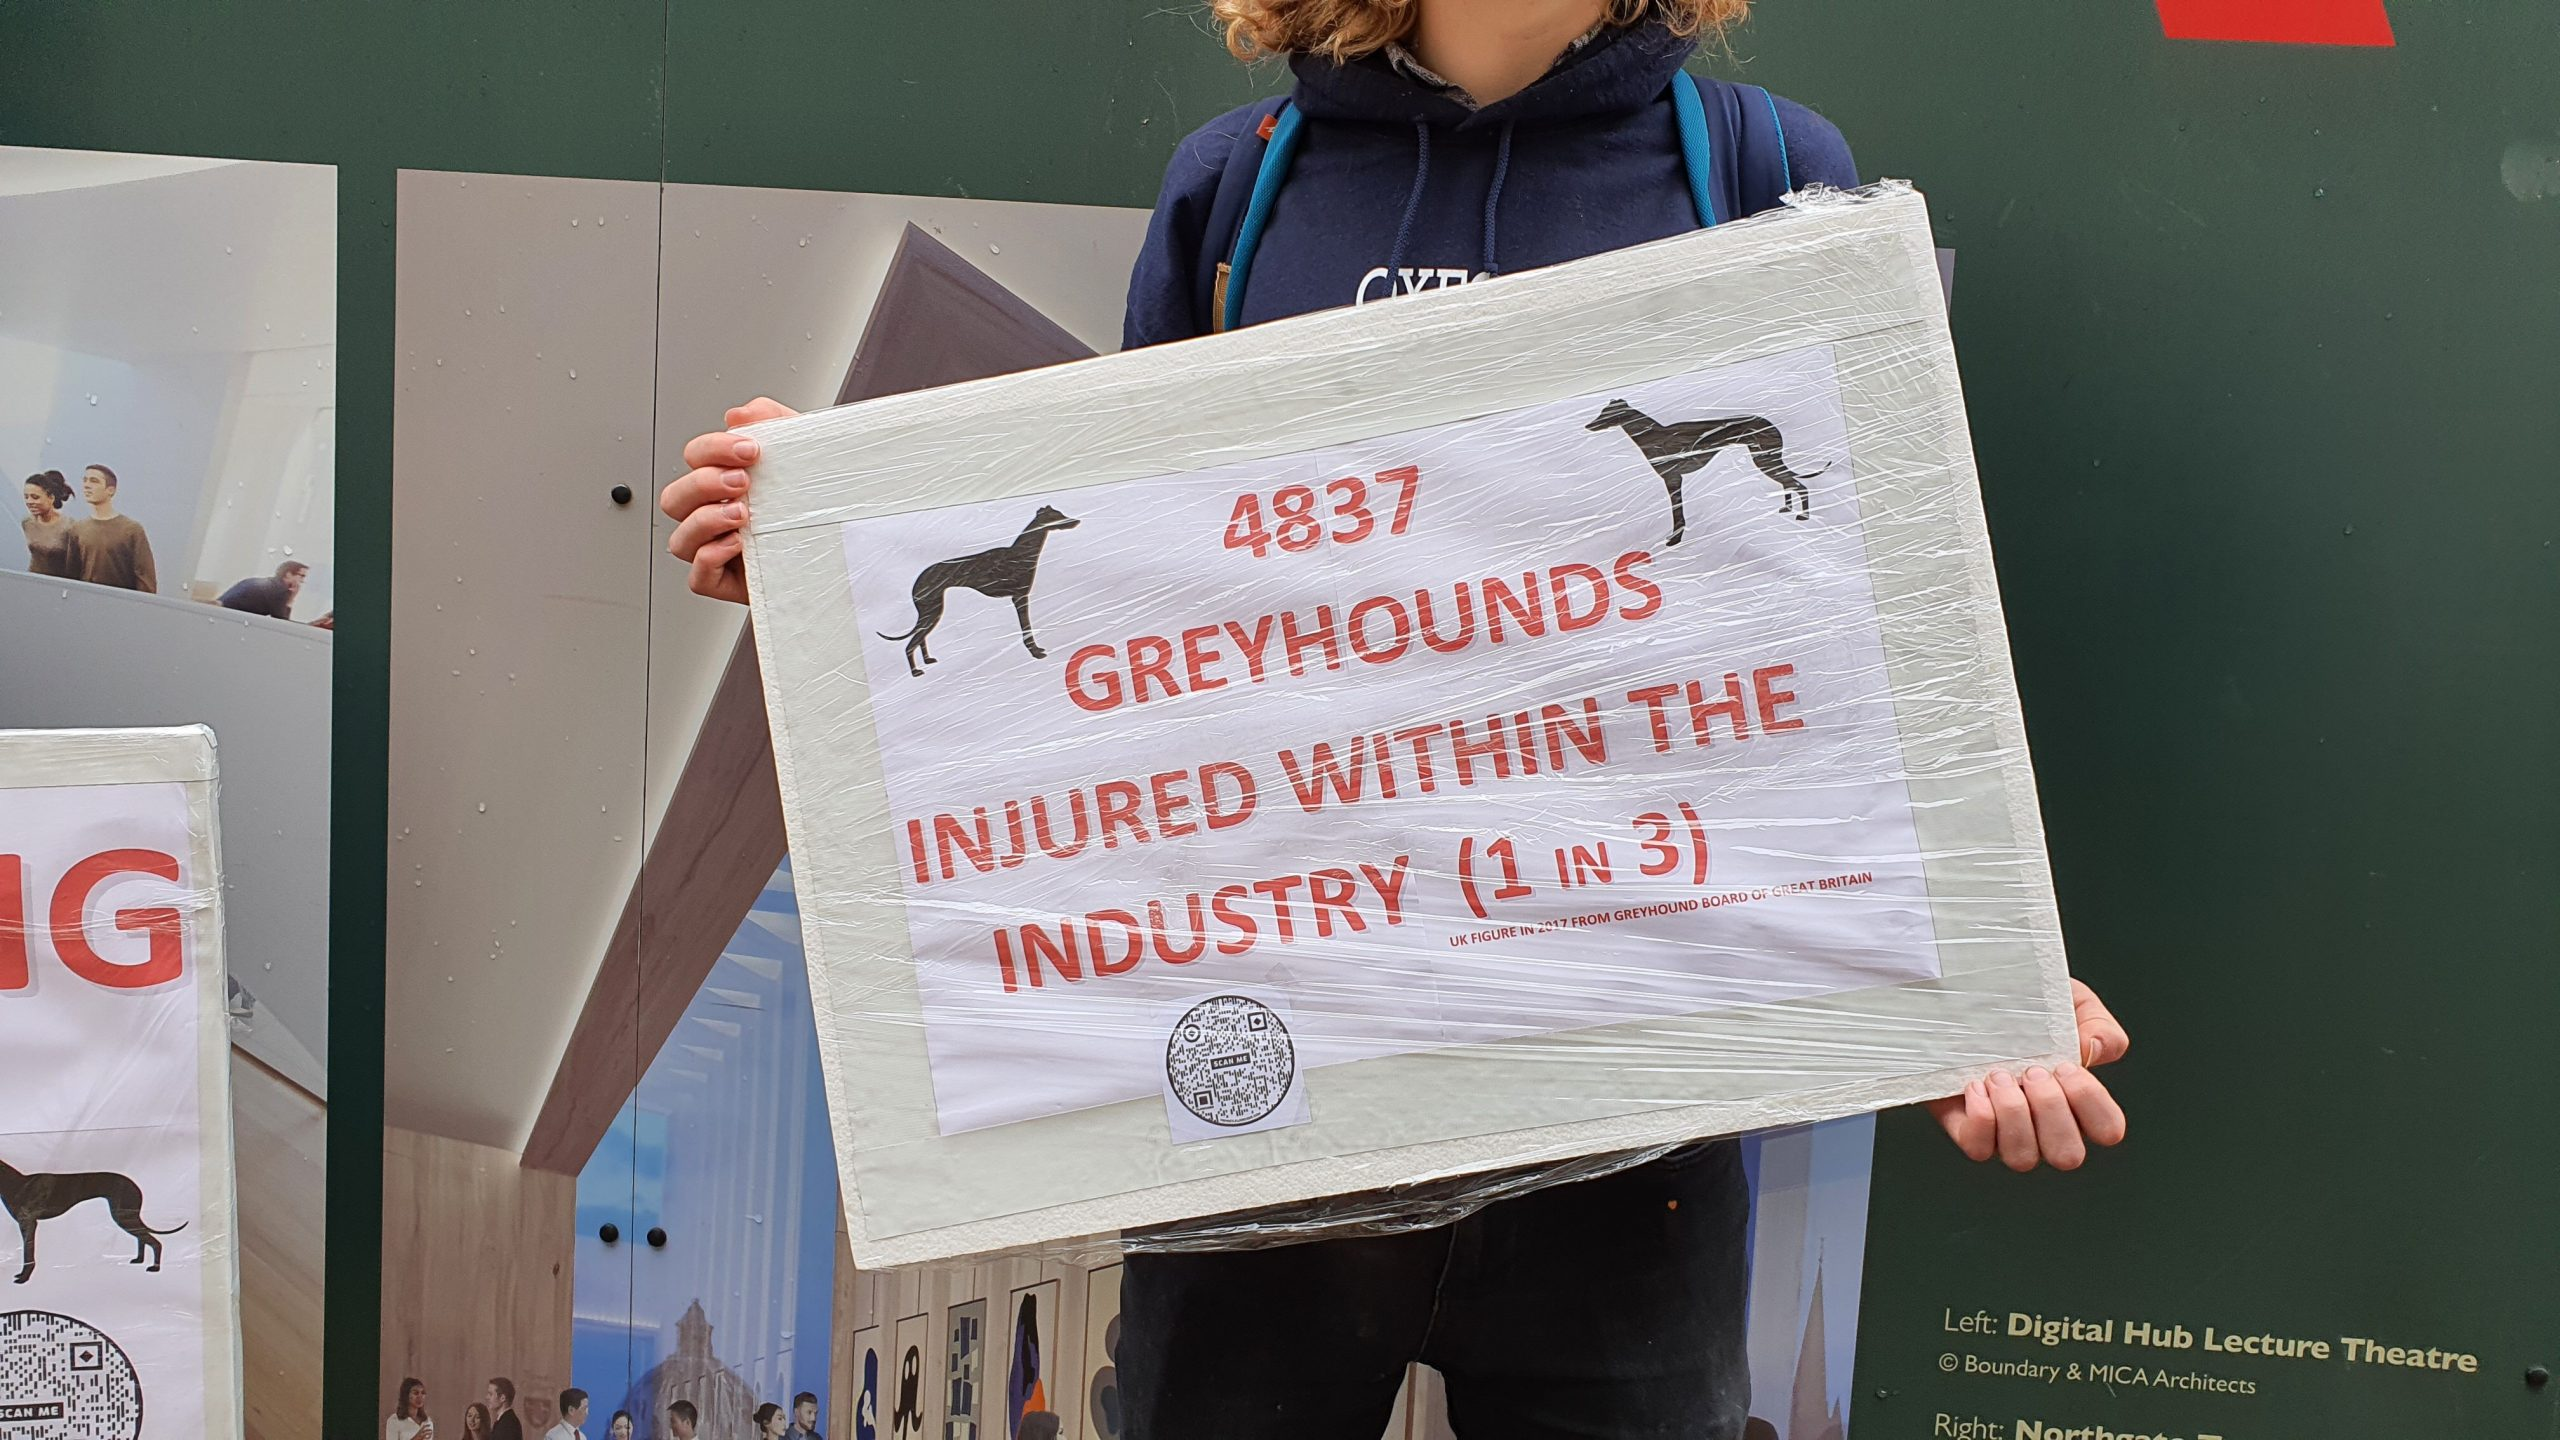 """A protester colds a sign reading """"4837 greyhounds injured within the industry (1 in 3)""""."""